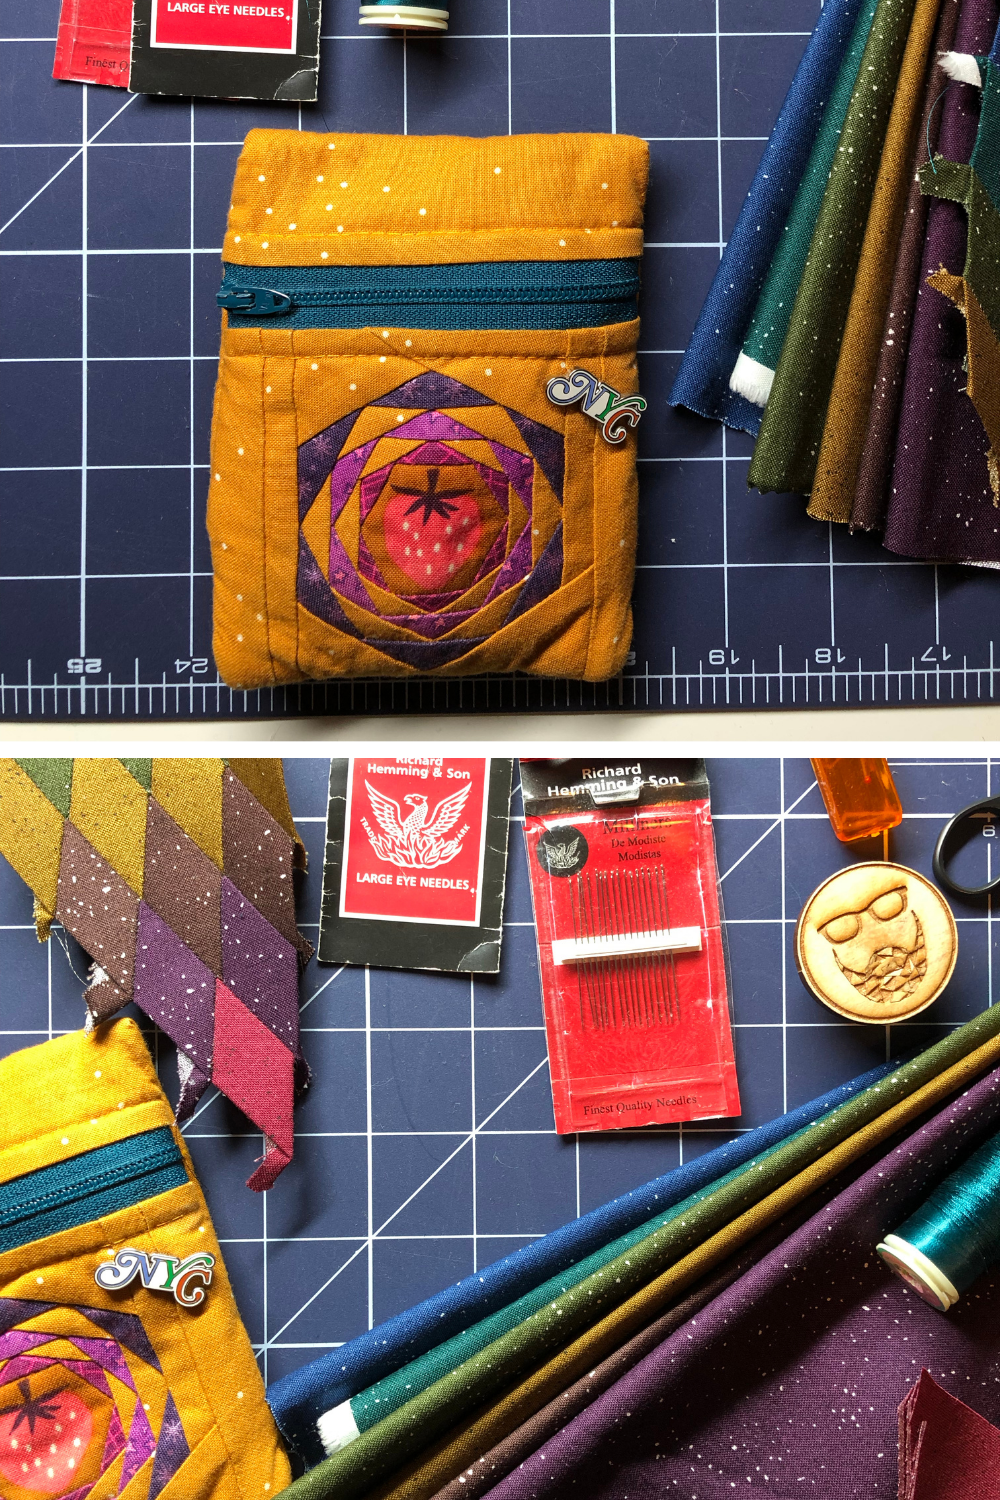 Giucy Giuce's on the go EPP sewing kit and essential notions | What's in your sewing bag Giucy Giuce? | Shannon Fraser Designs' series #sewingbag